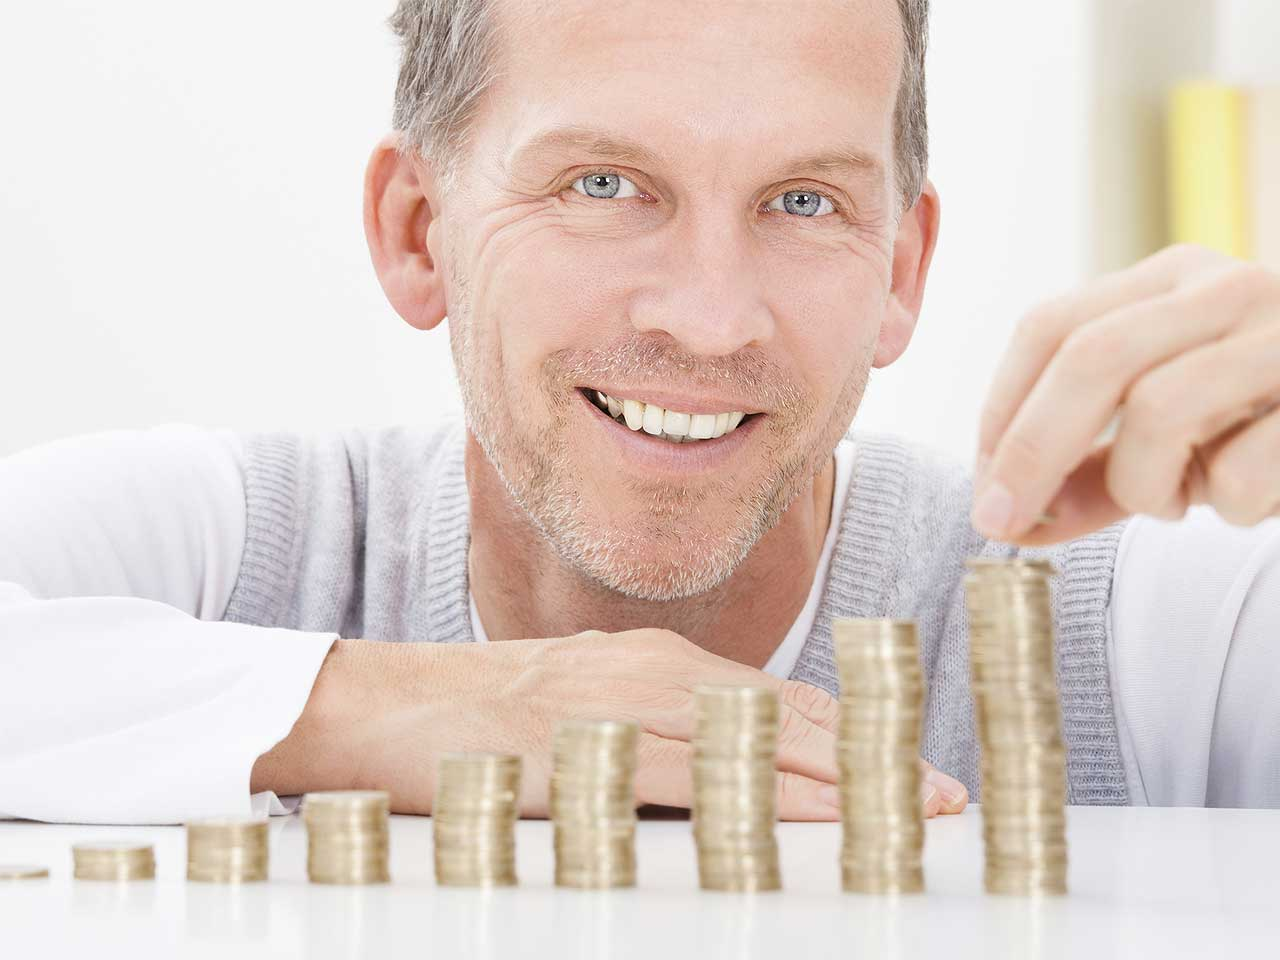 Mature man putting his money into piles to represent investing in an annuity.